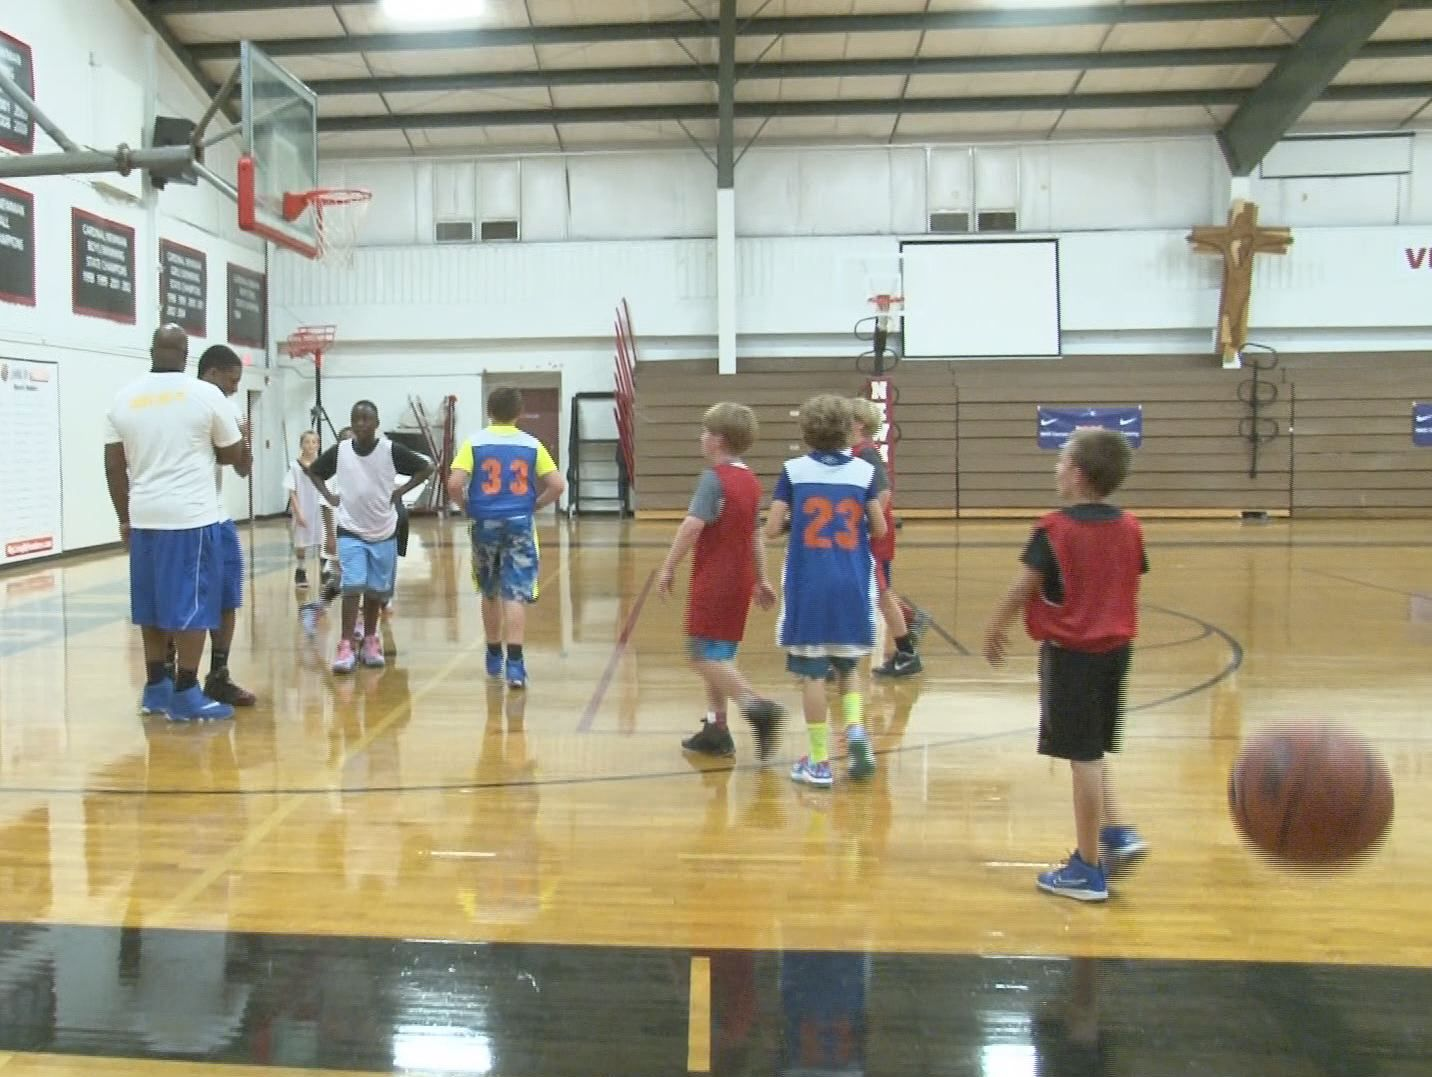 An enthusiastic group of 4th through 9th graders are at Cardinal Newman High School for a Nike basketball camp.